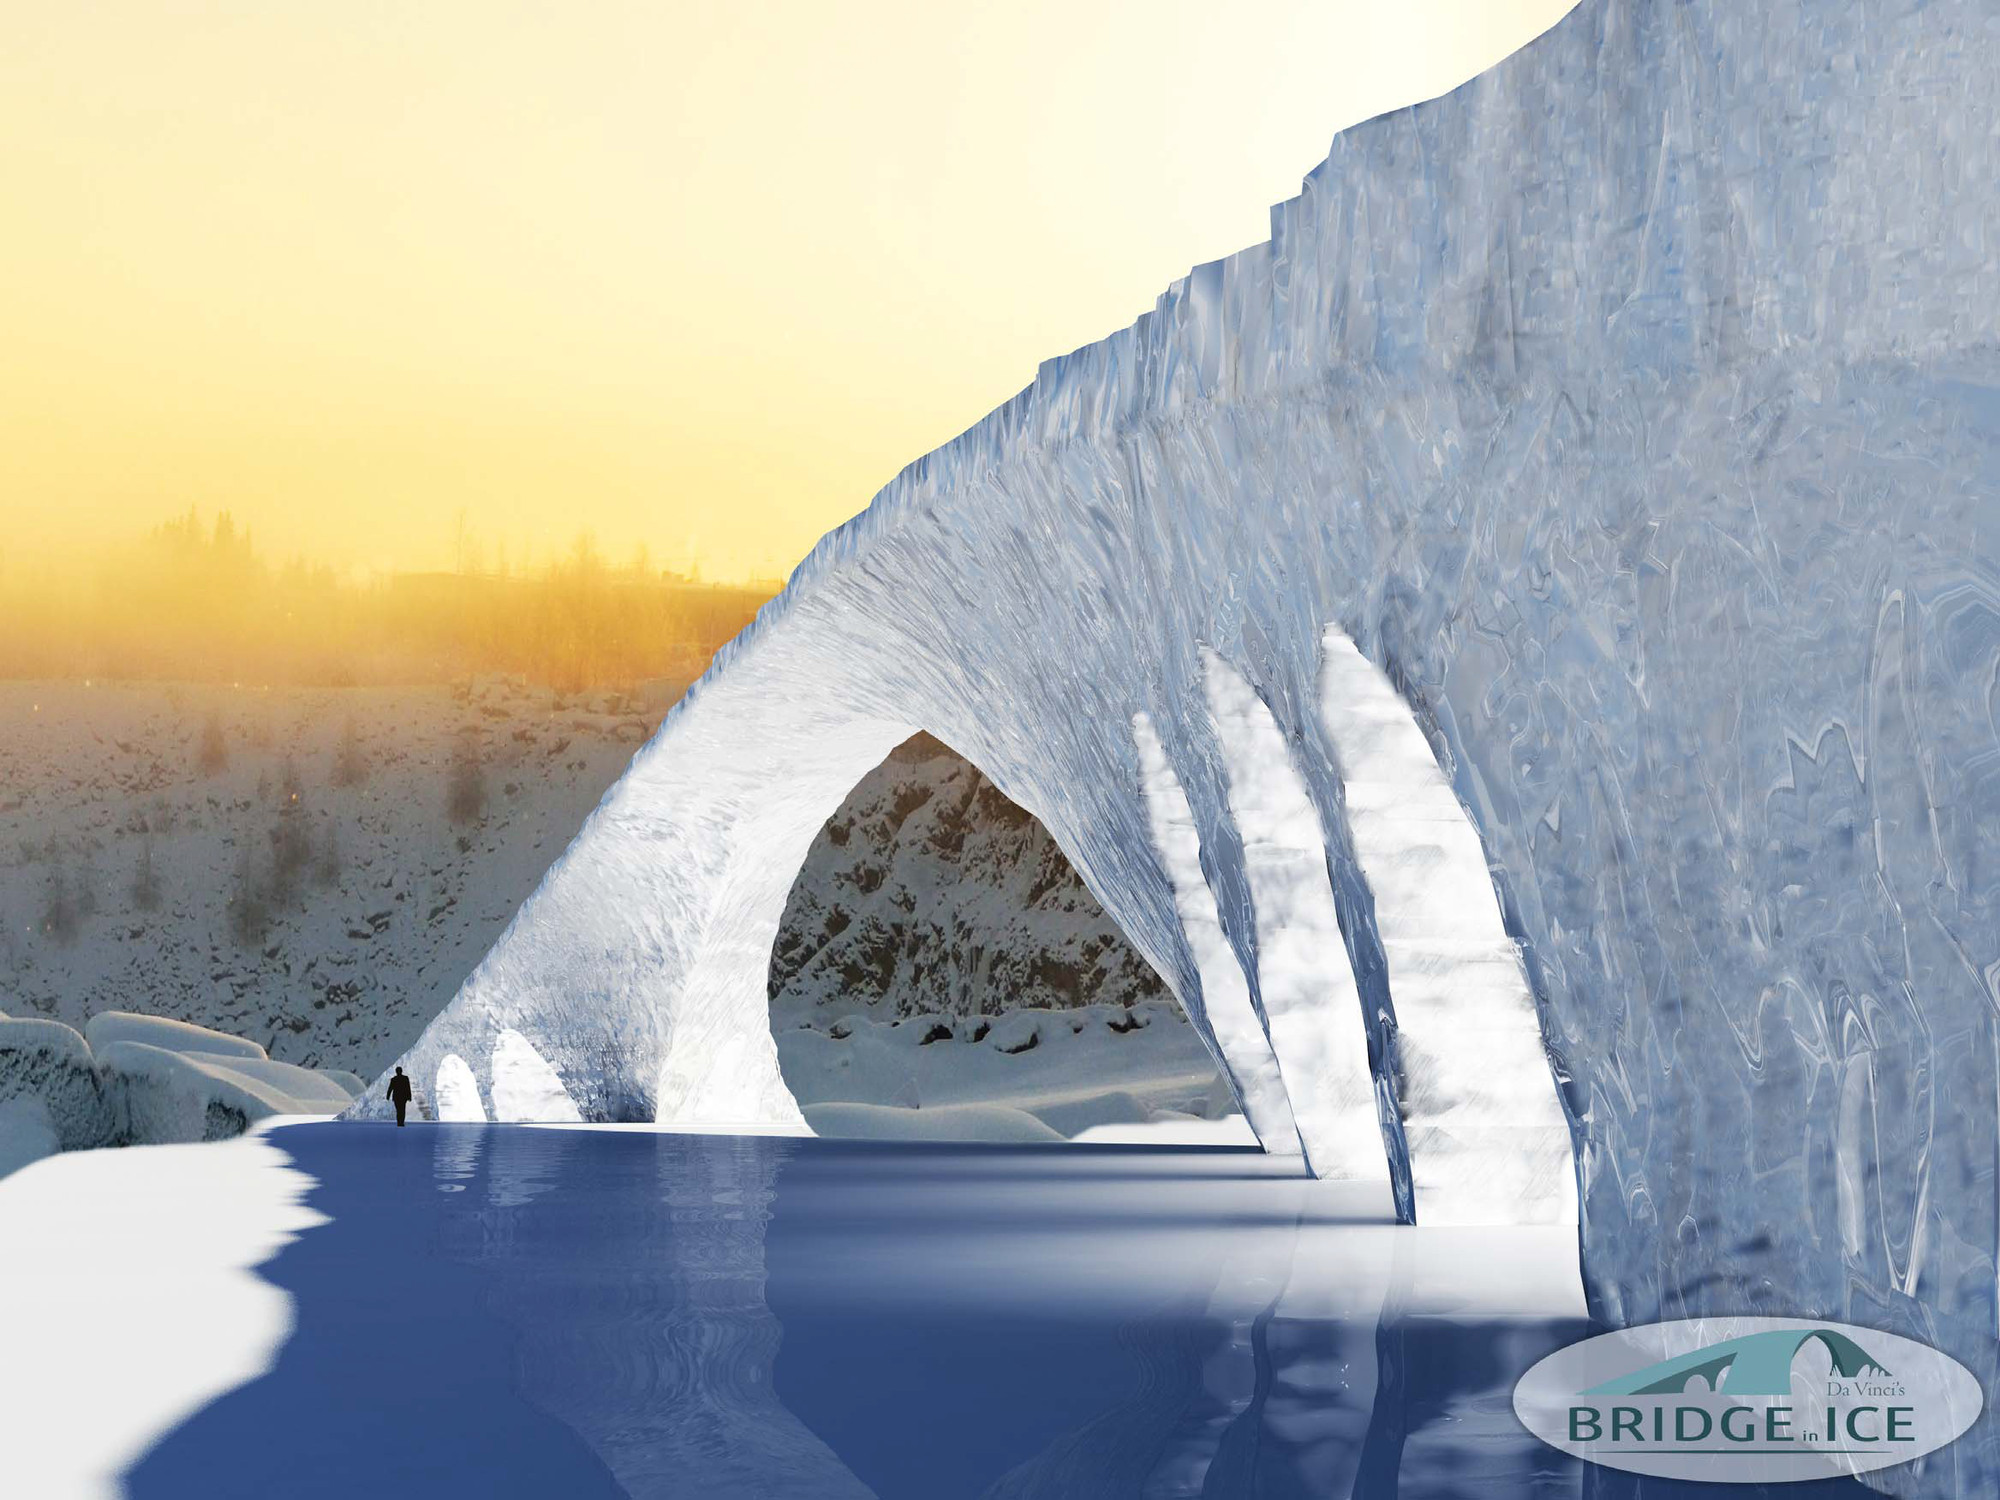 TU/e Students to Build Leonardo da Vinci's Bridge Out of Ice, Courtesy of Eindhoven University of Technology